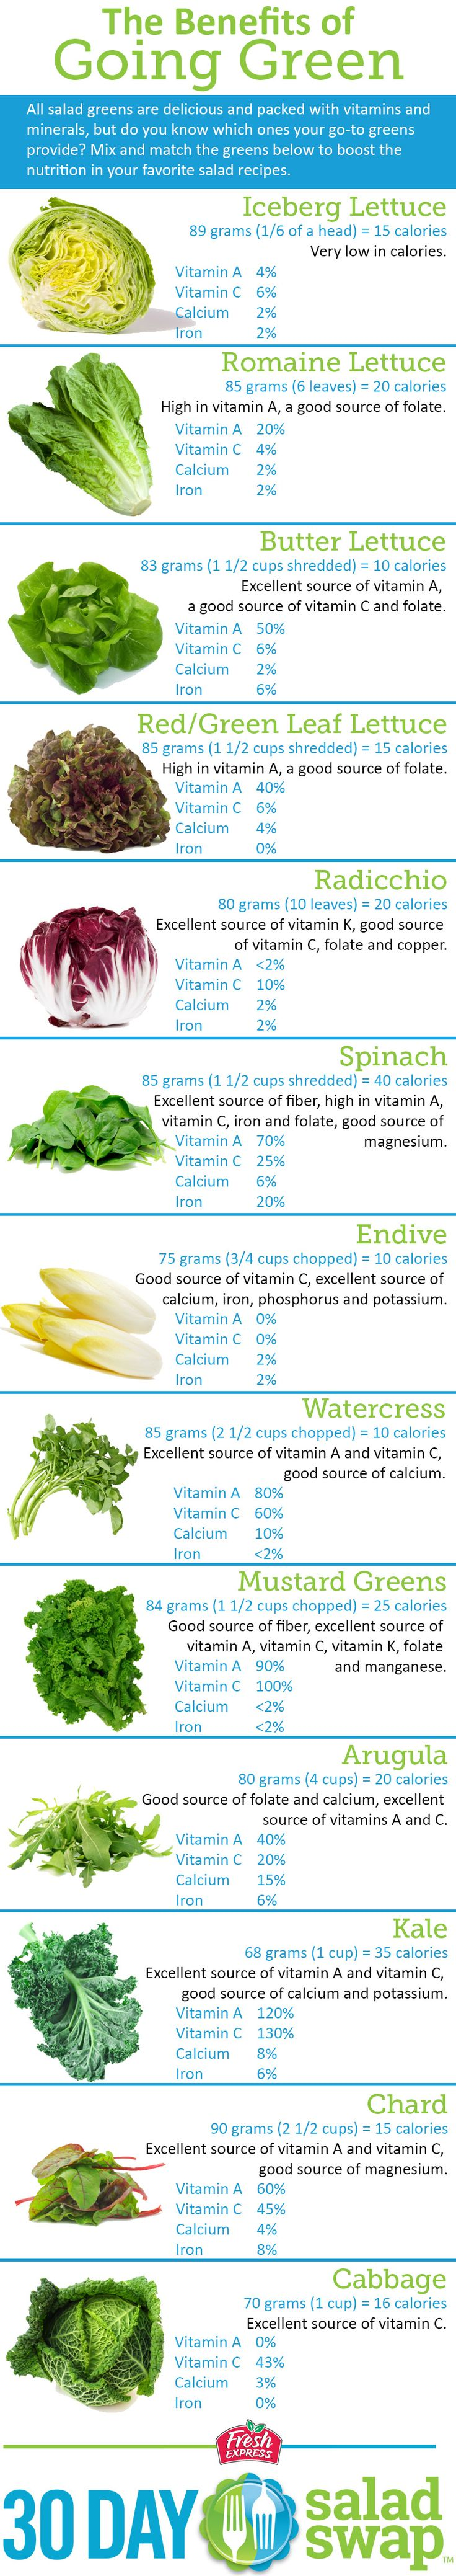 The Benefits of Going Green. Learn about the health benefits of various greens. #saladswap #FreshExpress -  - Great time to start Alkaline Lifestyle - Make a lifestyle change today and start feeling and looking better with SevenPoint2 - http://saksa.sevenpoint2.com/weight-loss-made-simple.html?country=cz&language=en